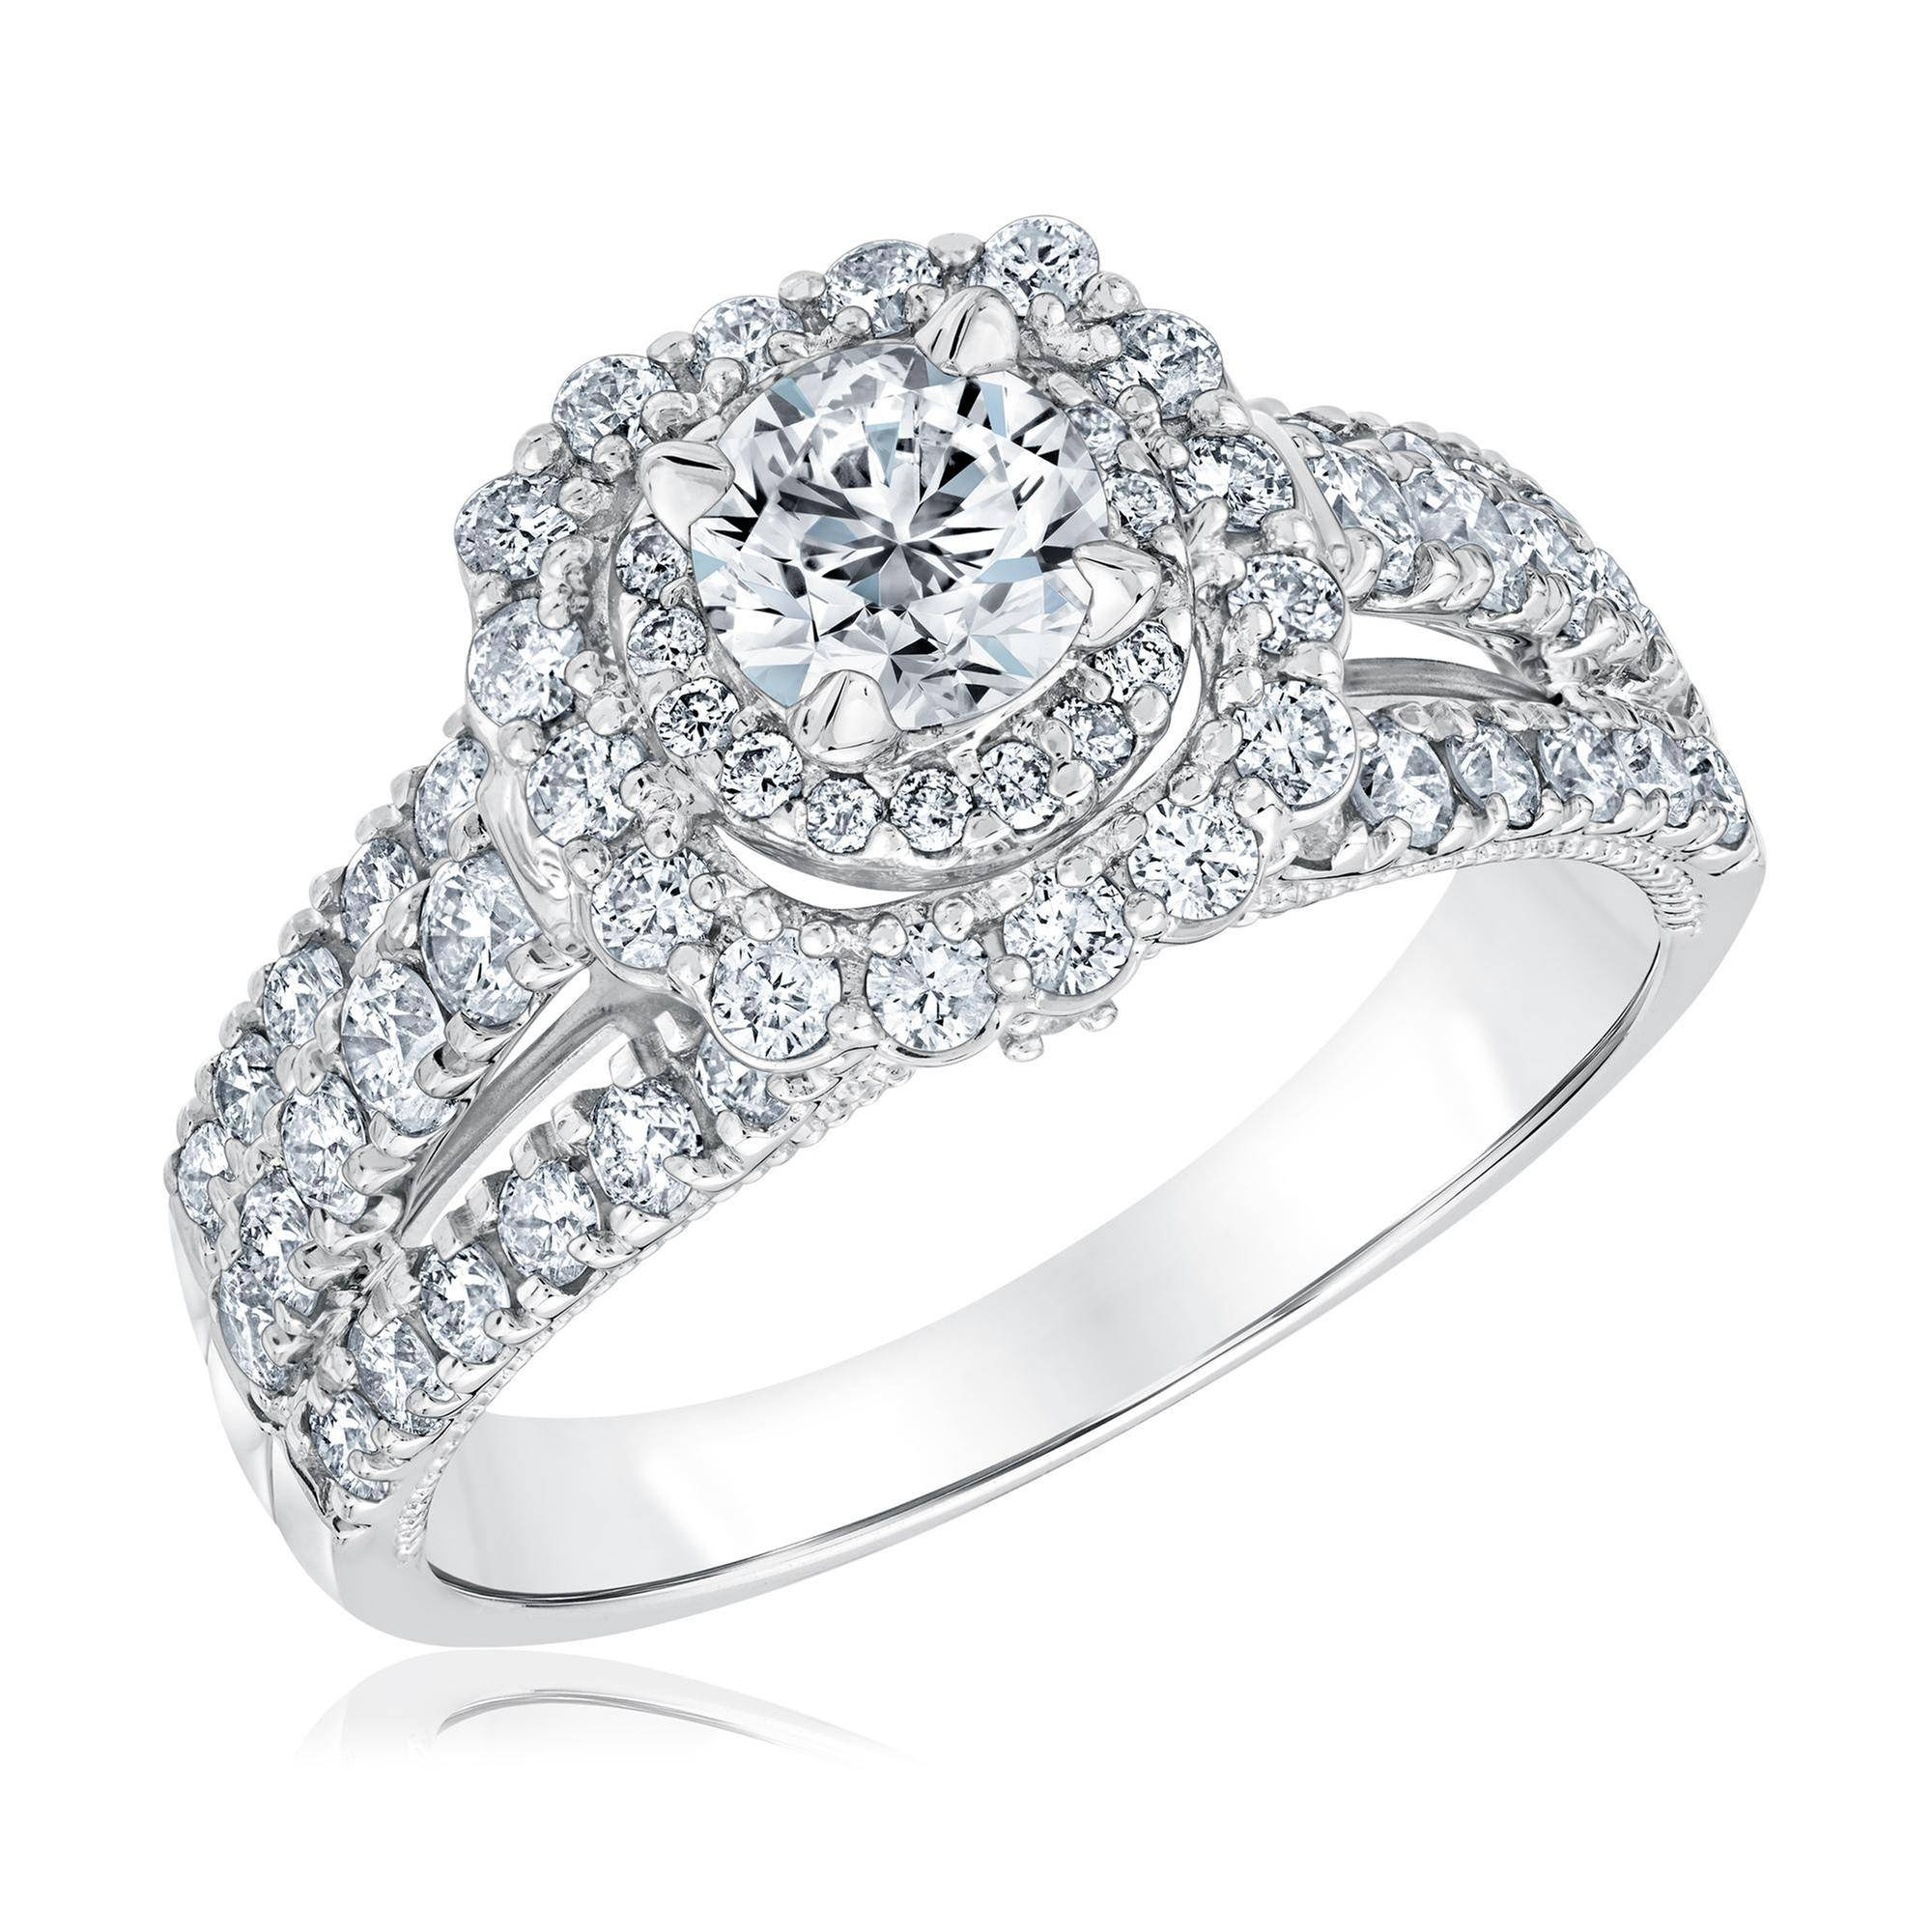 Engagement Rings Page 1 | Reeds Jewelers Within Current Three Stone Anniversary Rings (View 7 of 25)